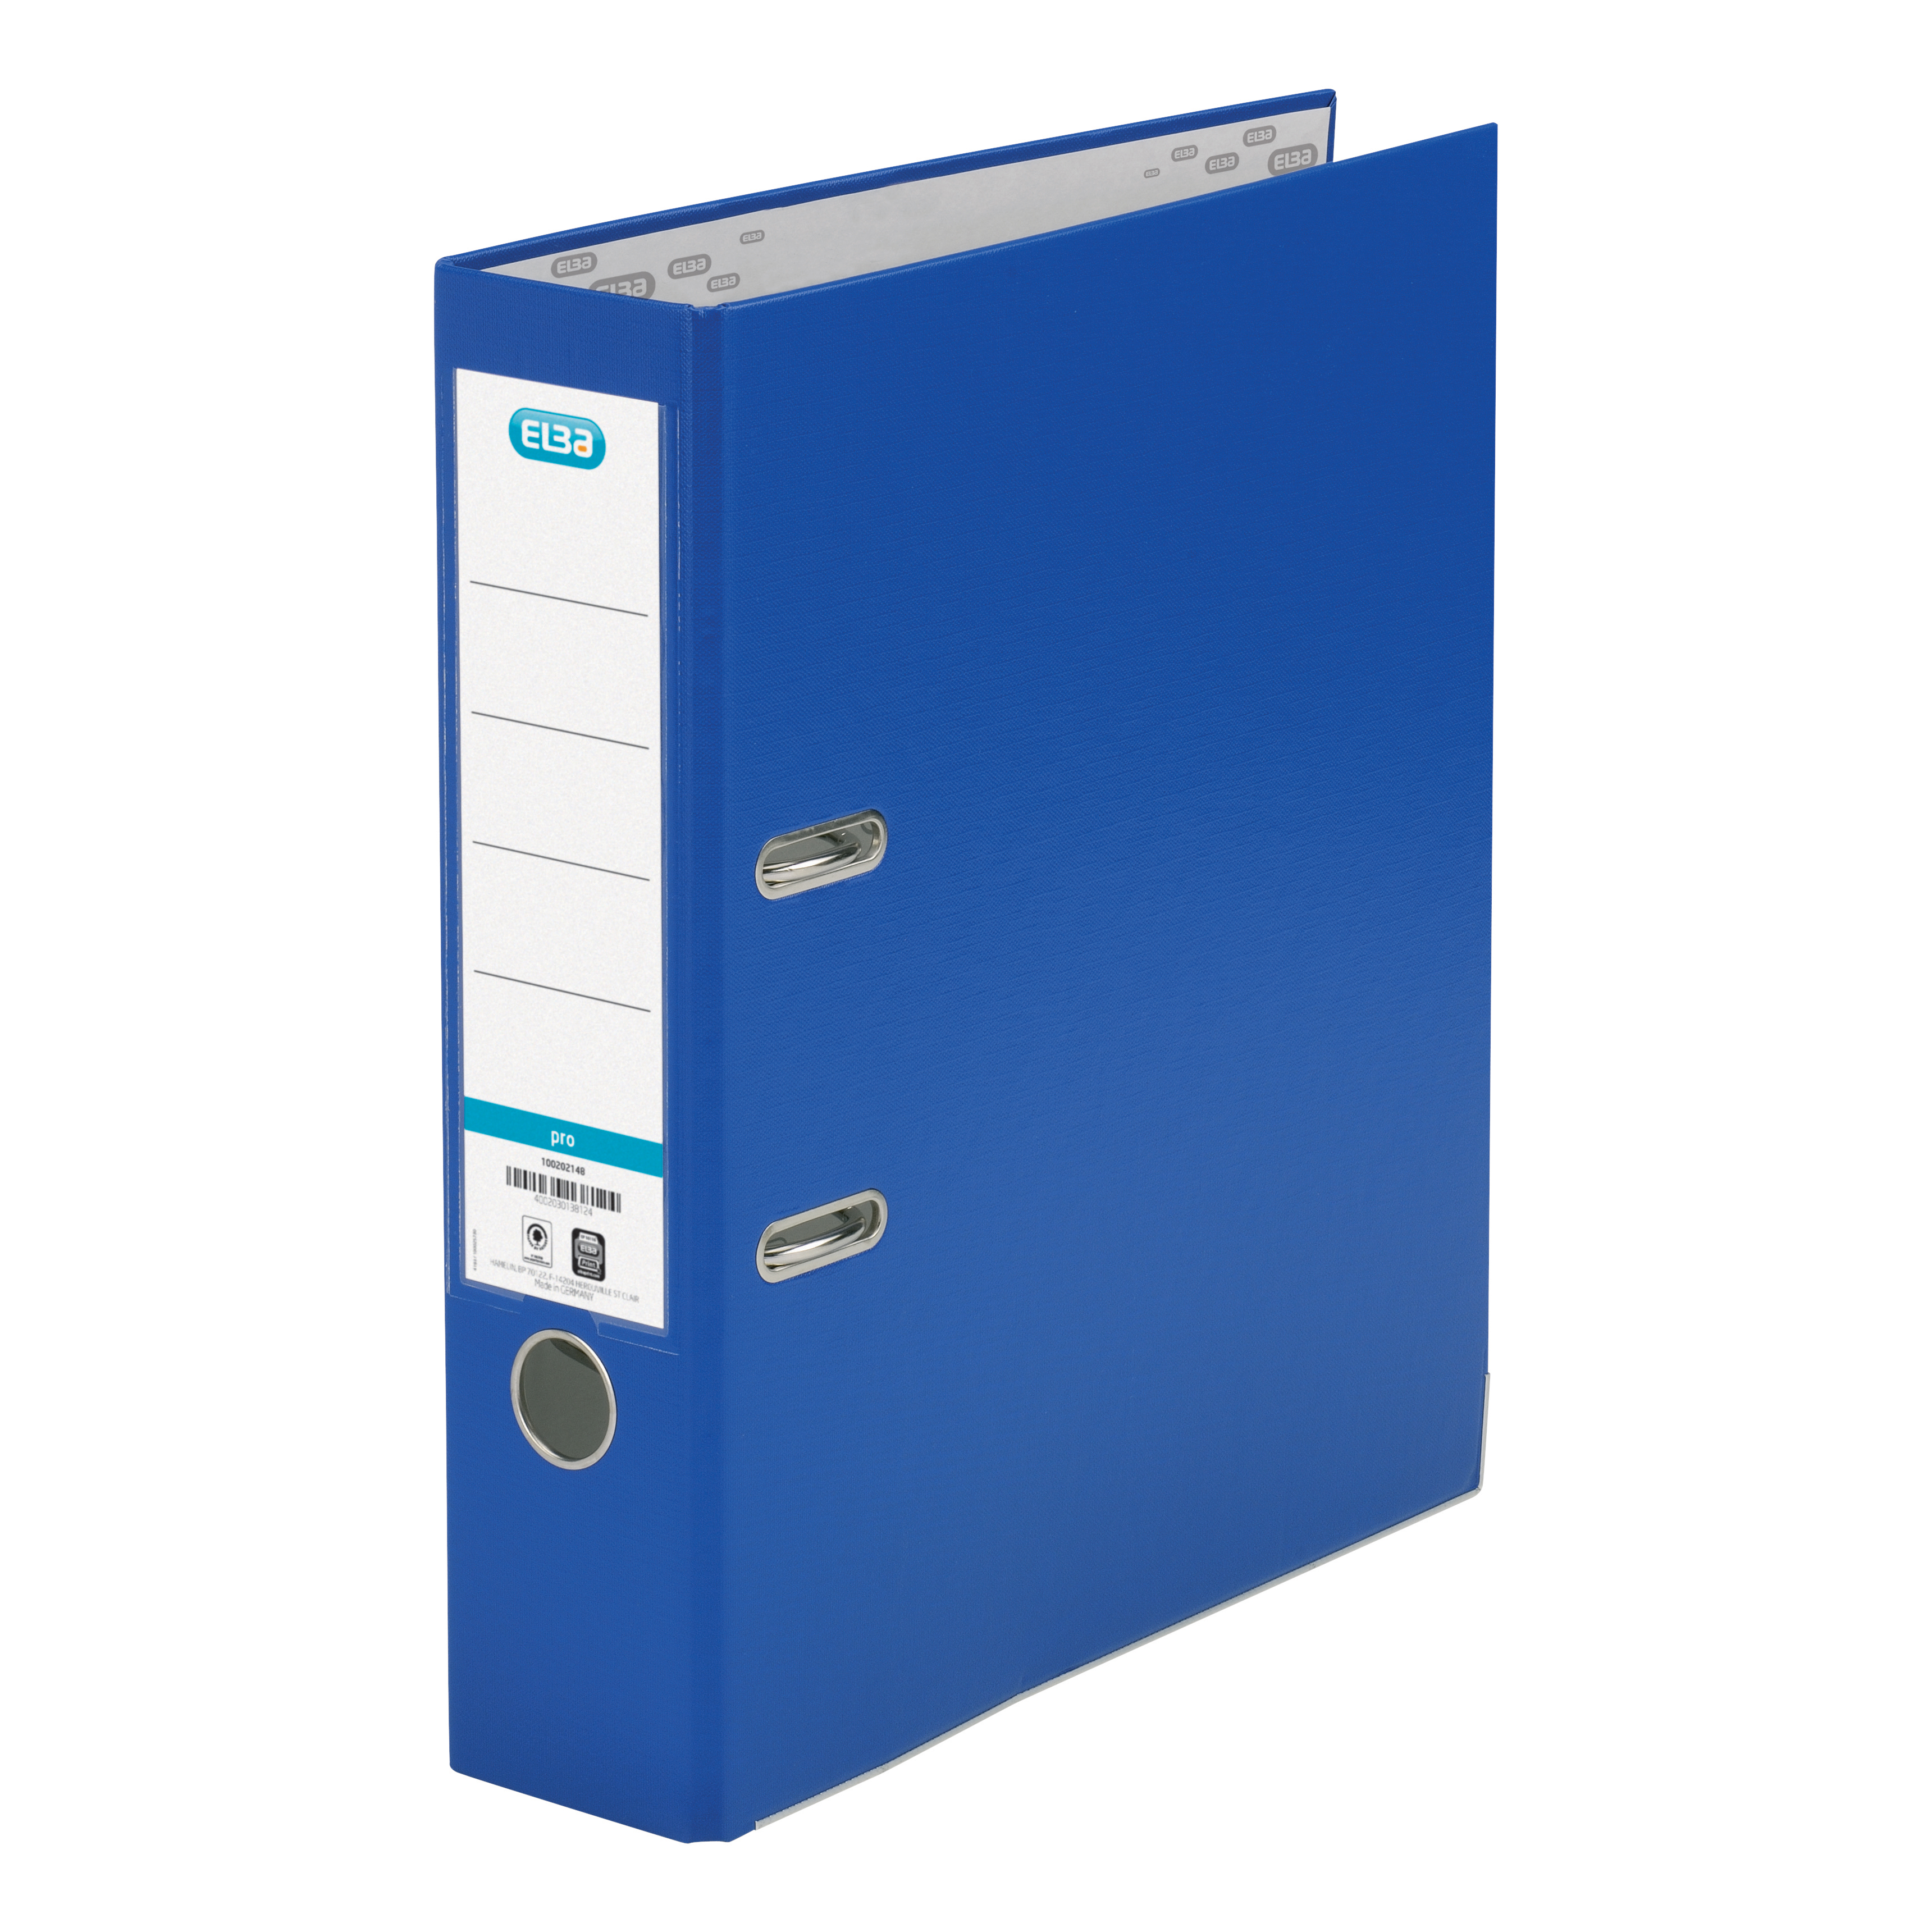 Elba Lever Arch File Polypropylene 70mm Spine A4 Blue Ref 100025926 Pack 10